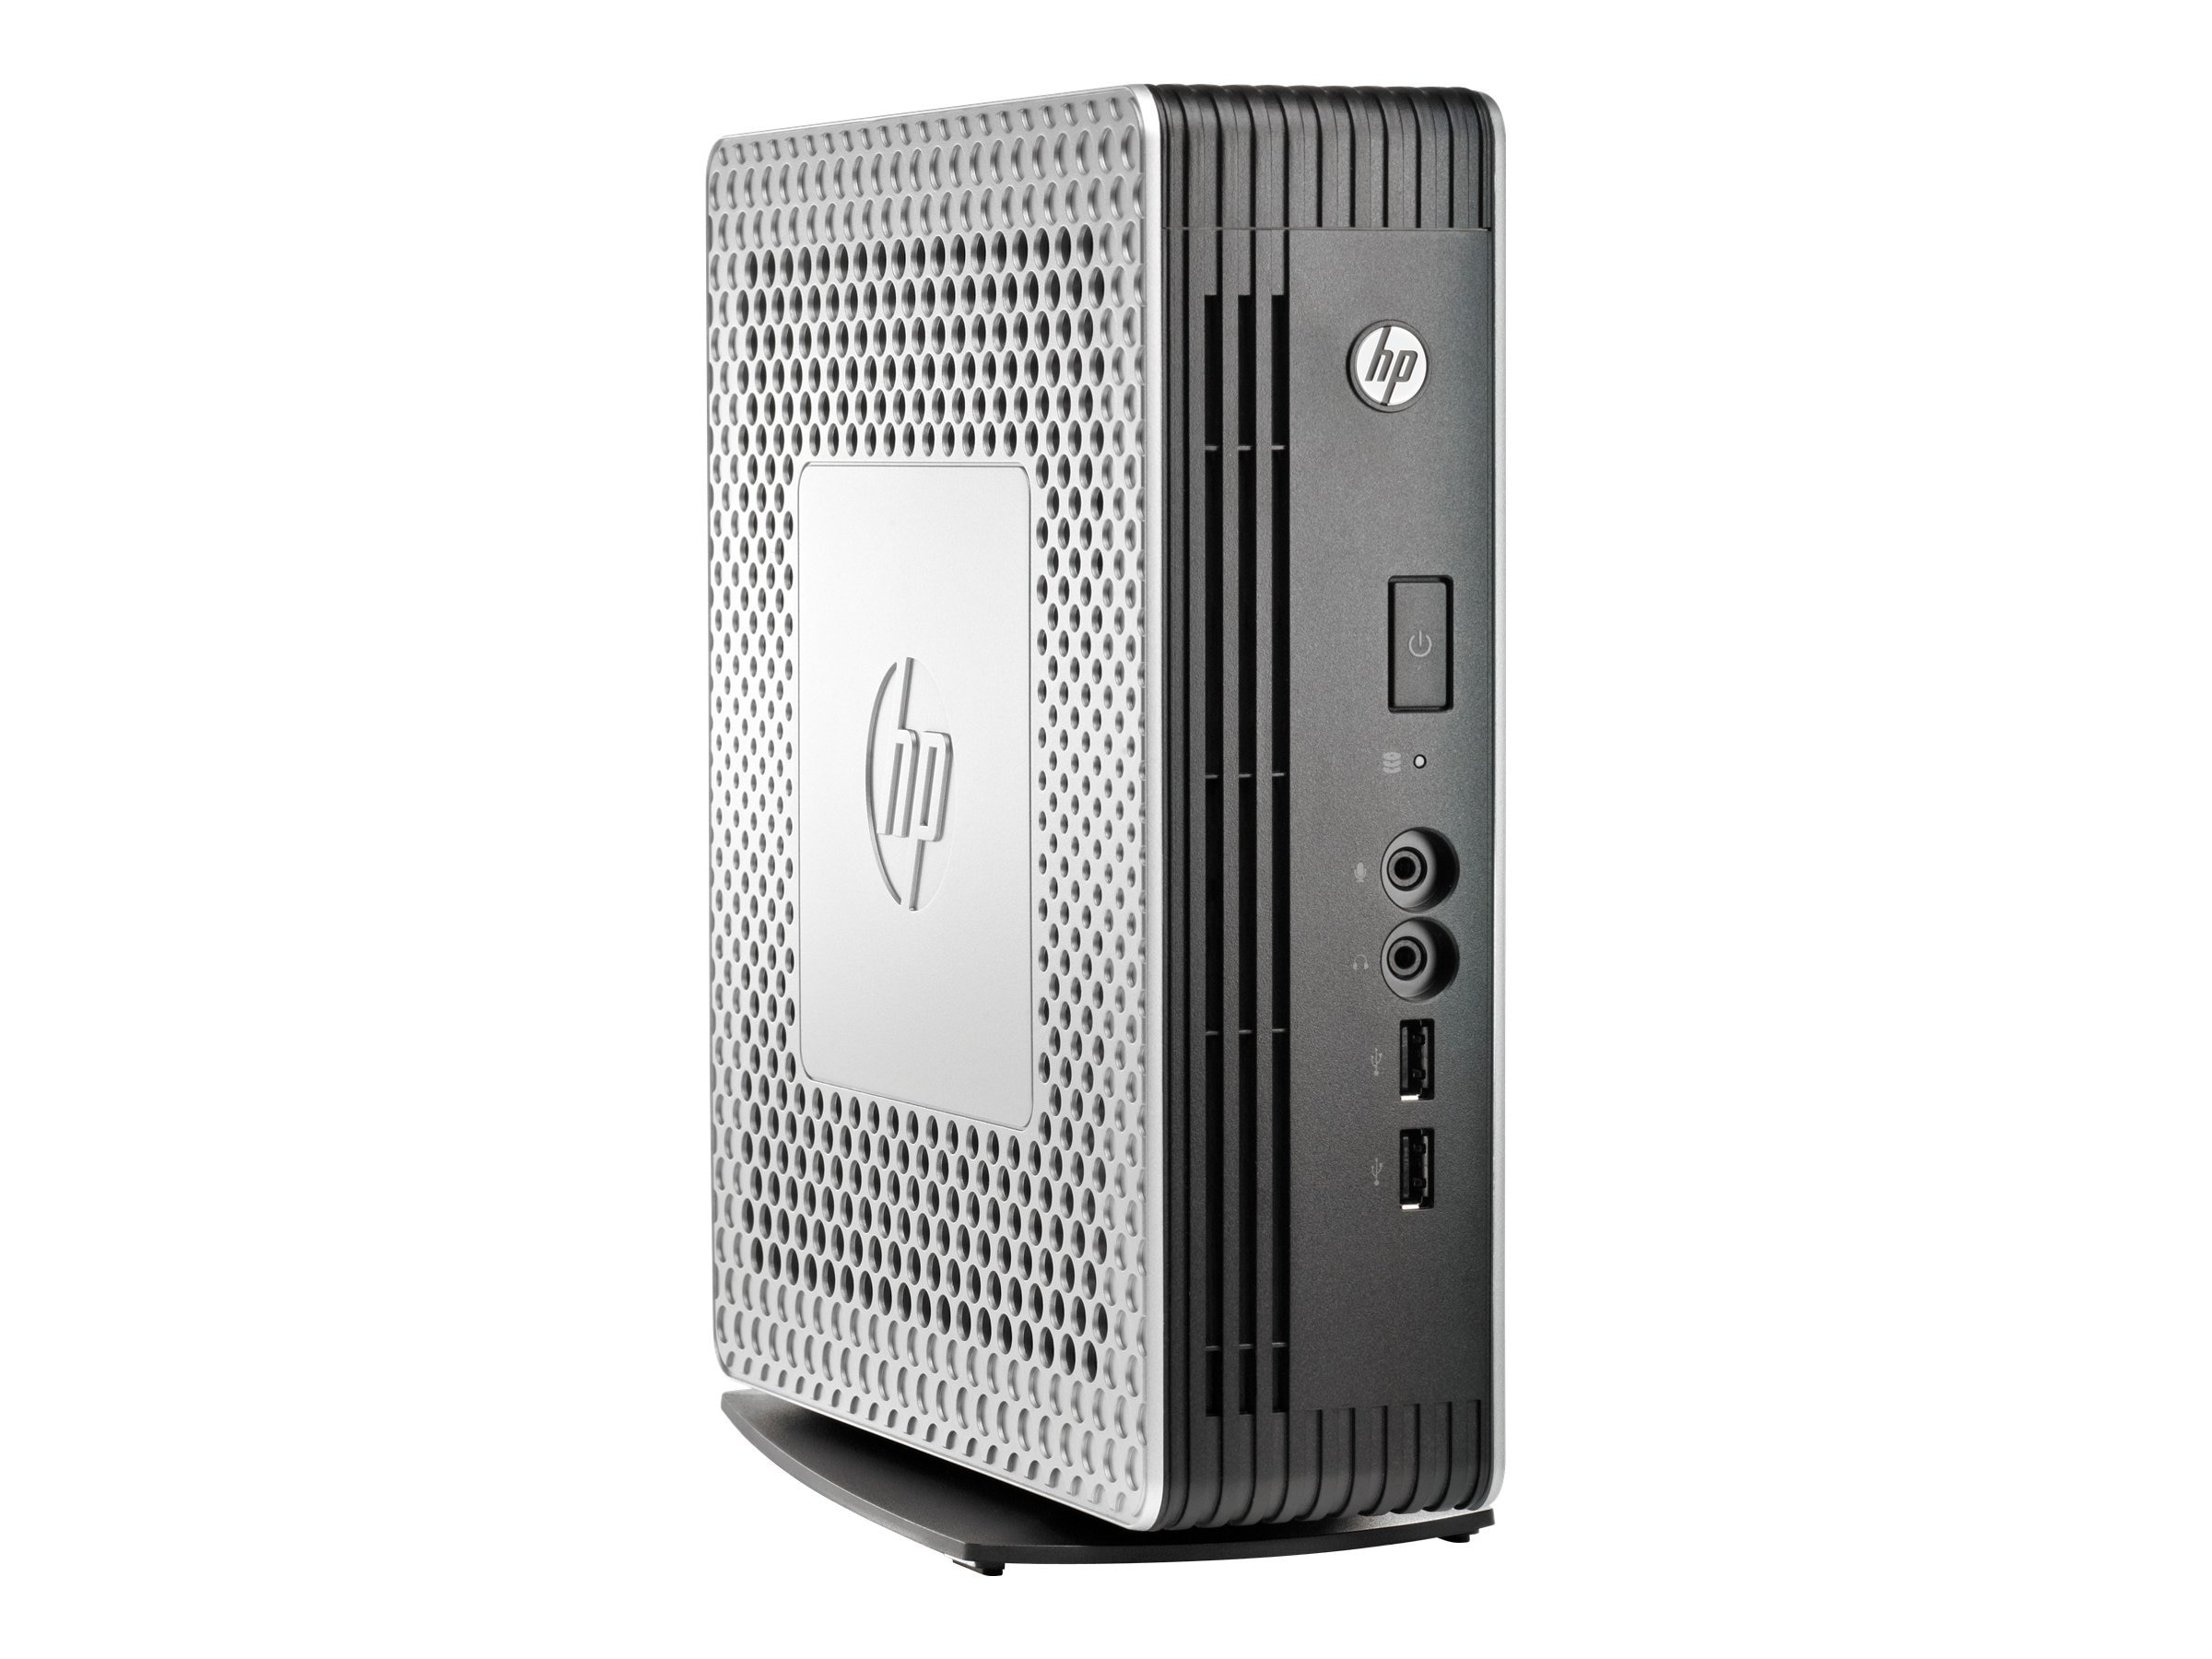 HP t610 PLUS Flexible Thin Client T56N 1.65GHz 4GB RAM 16GB Flash FirePro2460 GbE abgn WES7E, C9K57UT#ABA